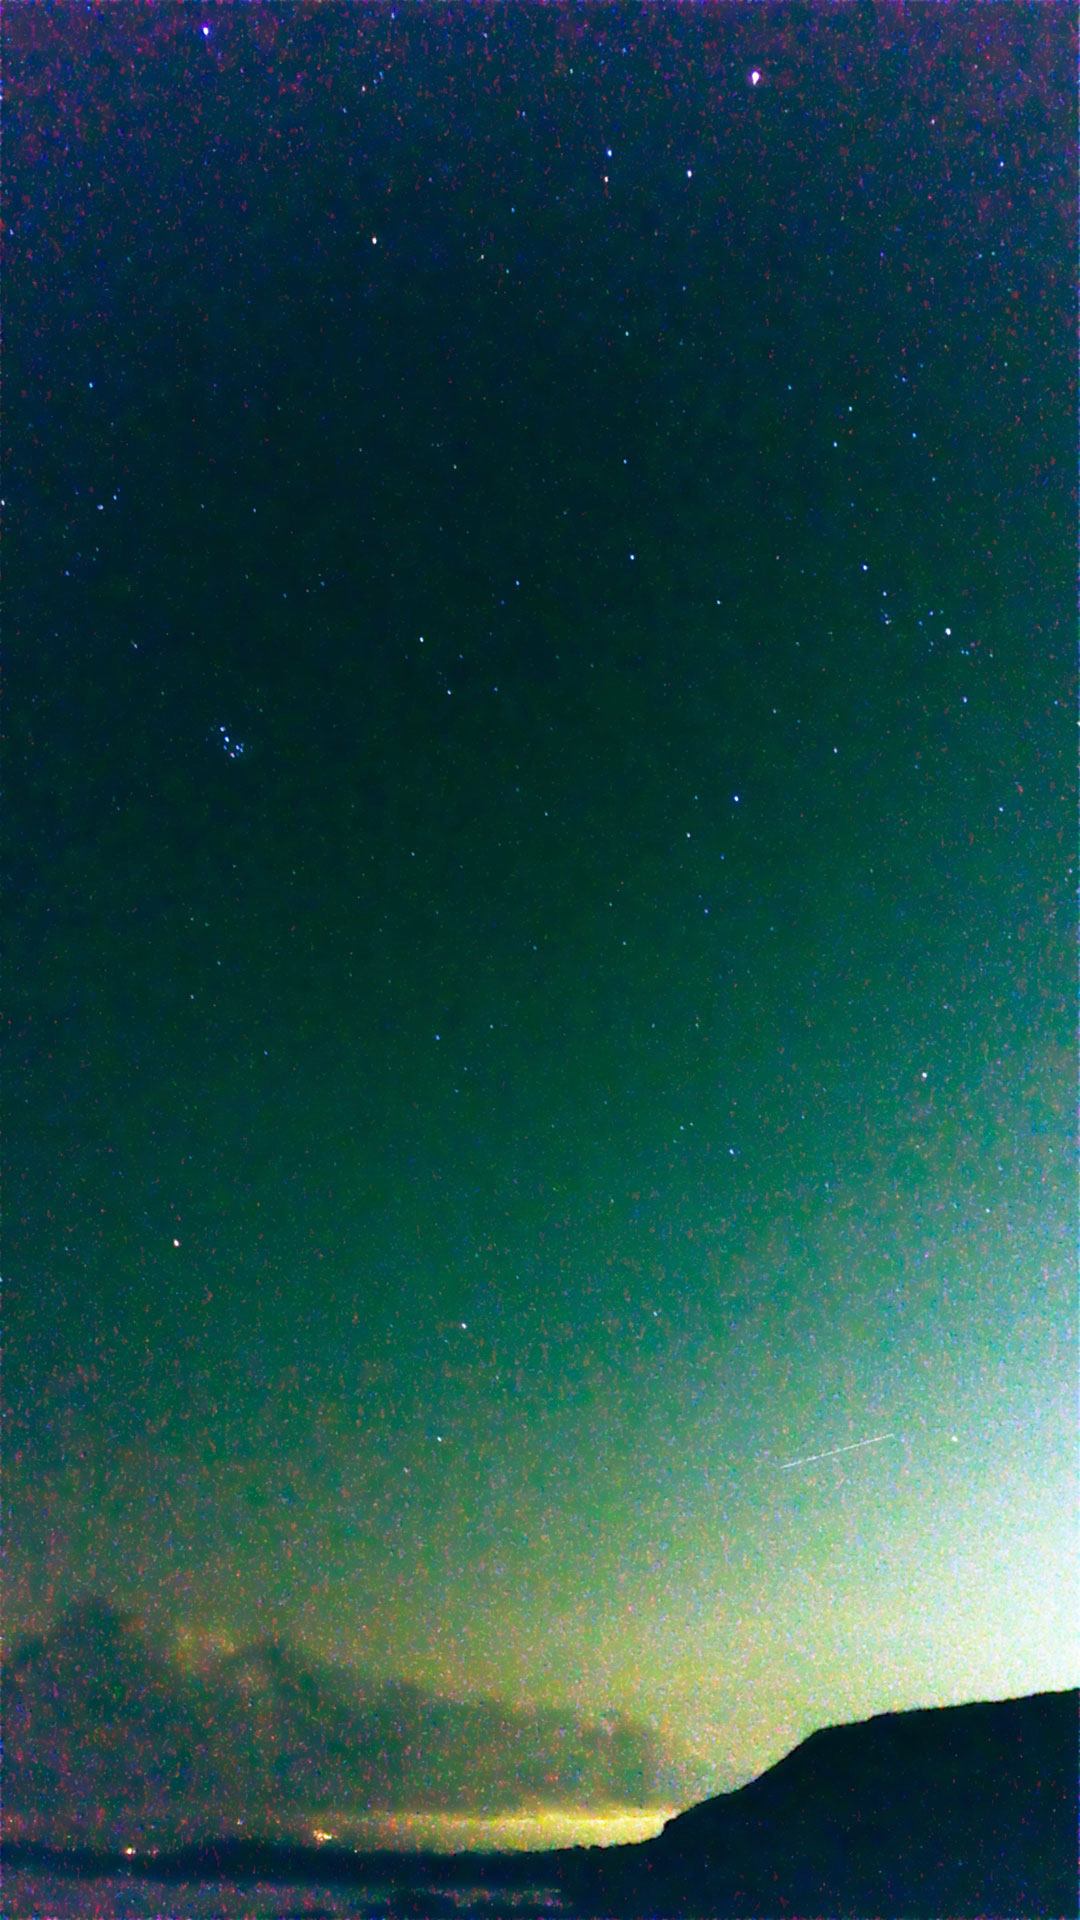 星降るカメラ iPhoneアプリ 星空 撮影 stars full camera astrophotography galaxy